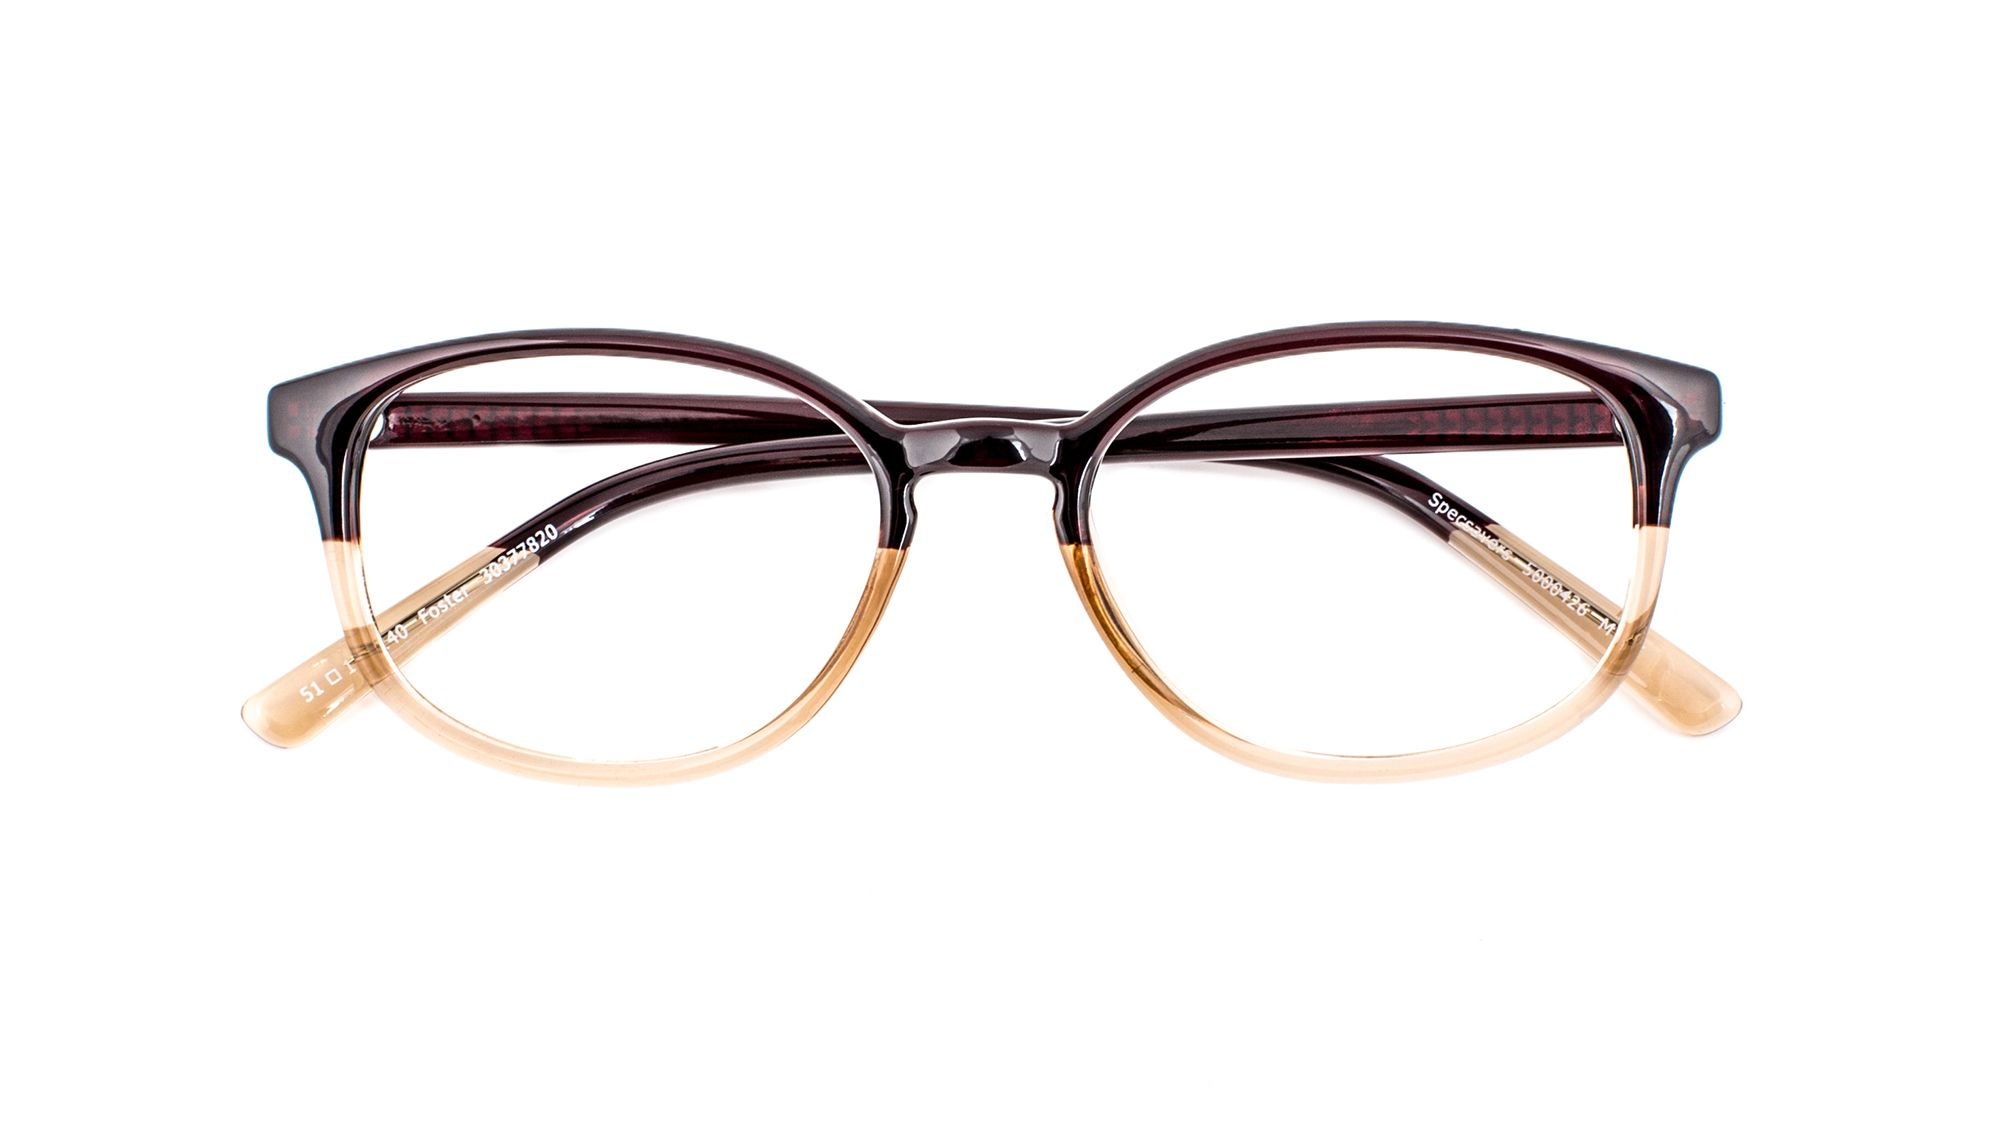 Specsavers glasses - FOSTER  516e1bfb4c